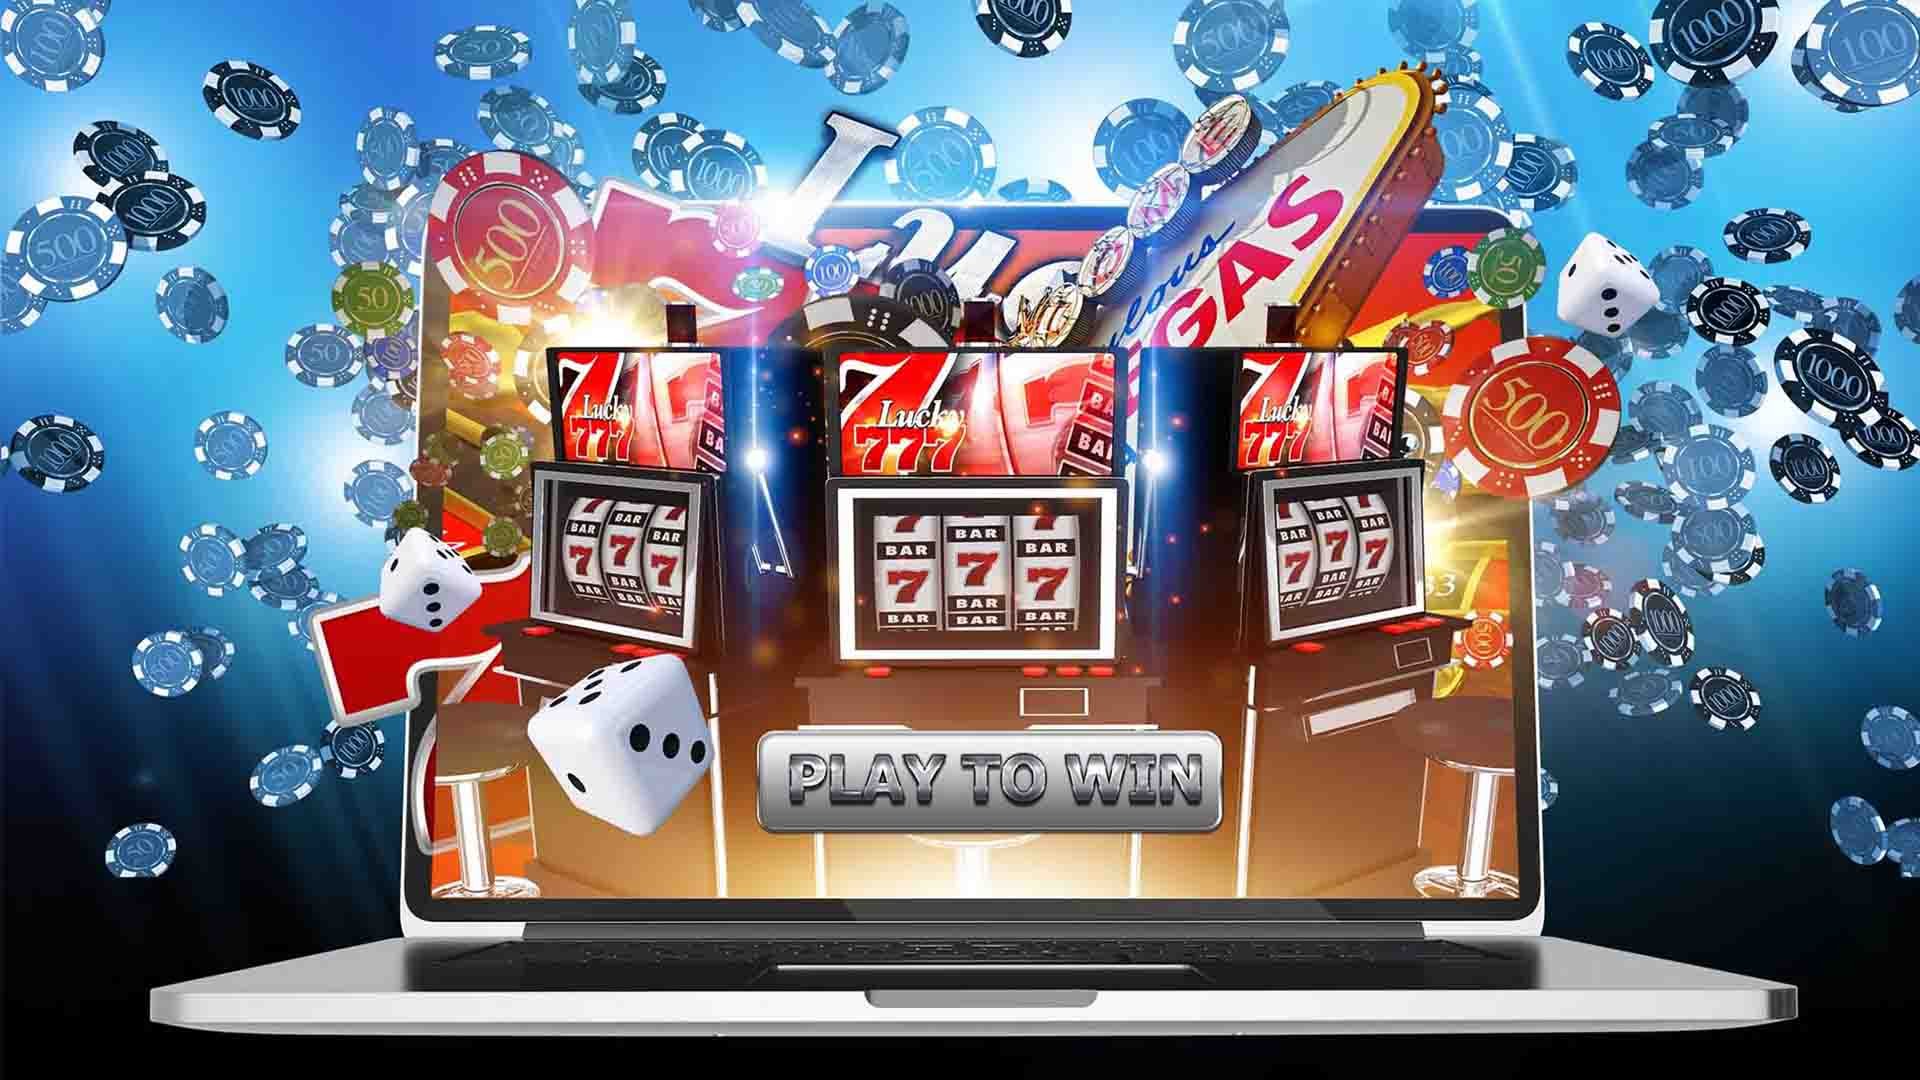 Do internet casinos provide cost-free video games to players?